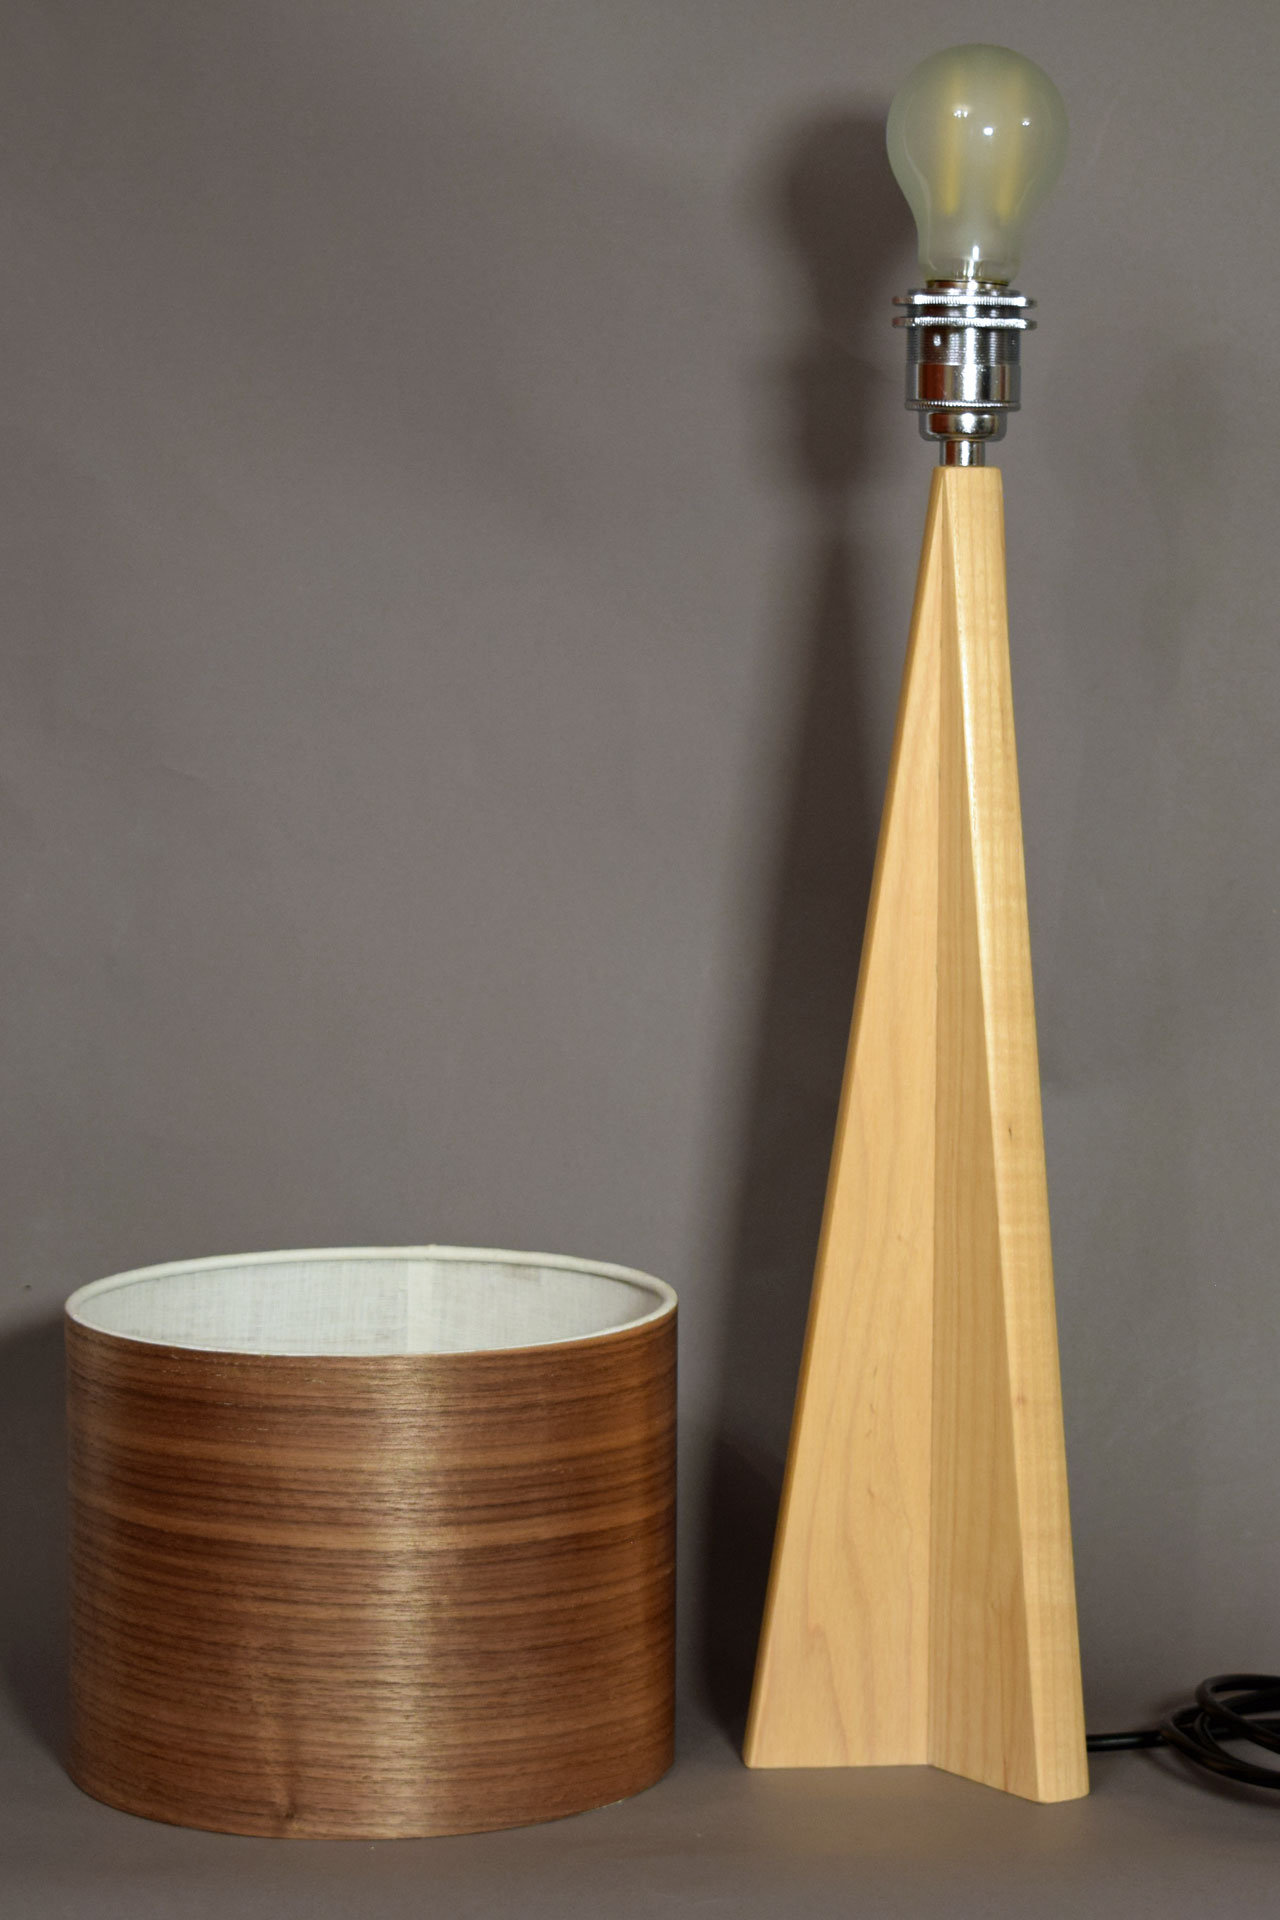 Pinnacle Table Lamp in Ash with Walnut Shade